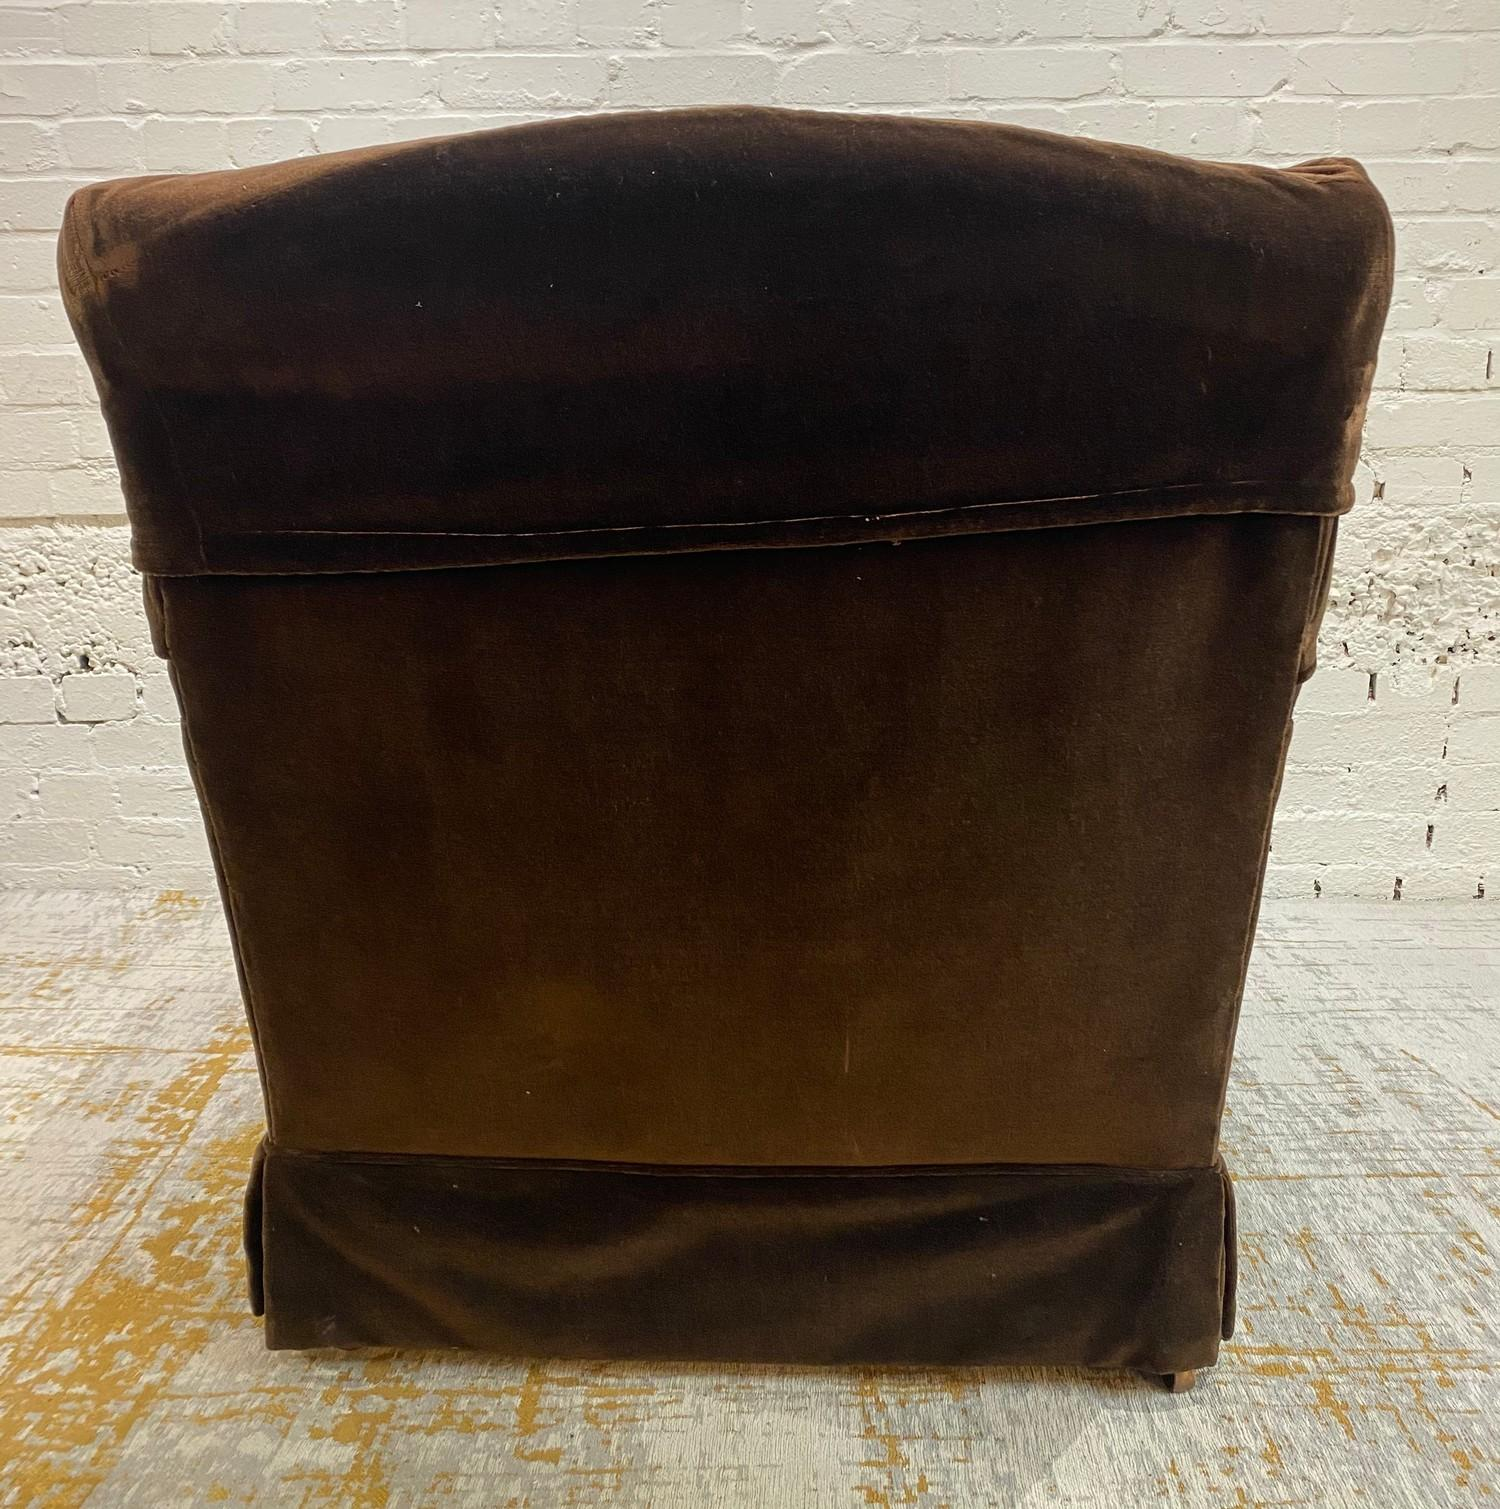 HOWARD AND SONS BRIDGEWATER ARMCHAIR, stamped 'Howard Chairs, 48 Sth Audley St London W.1 2385?, - Image 6 of 14